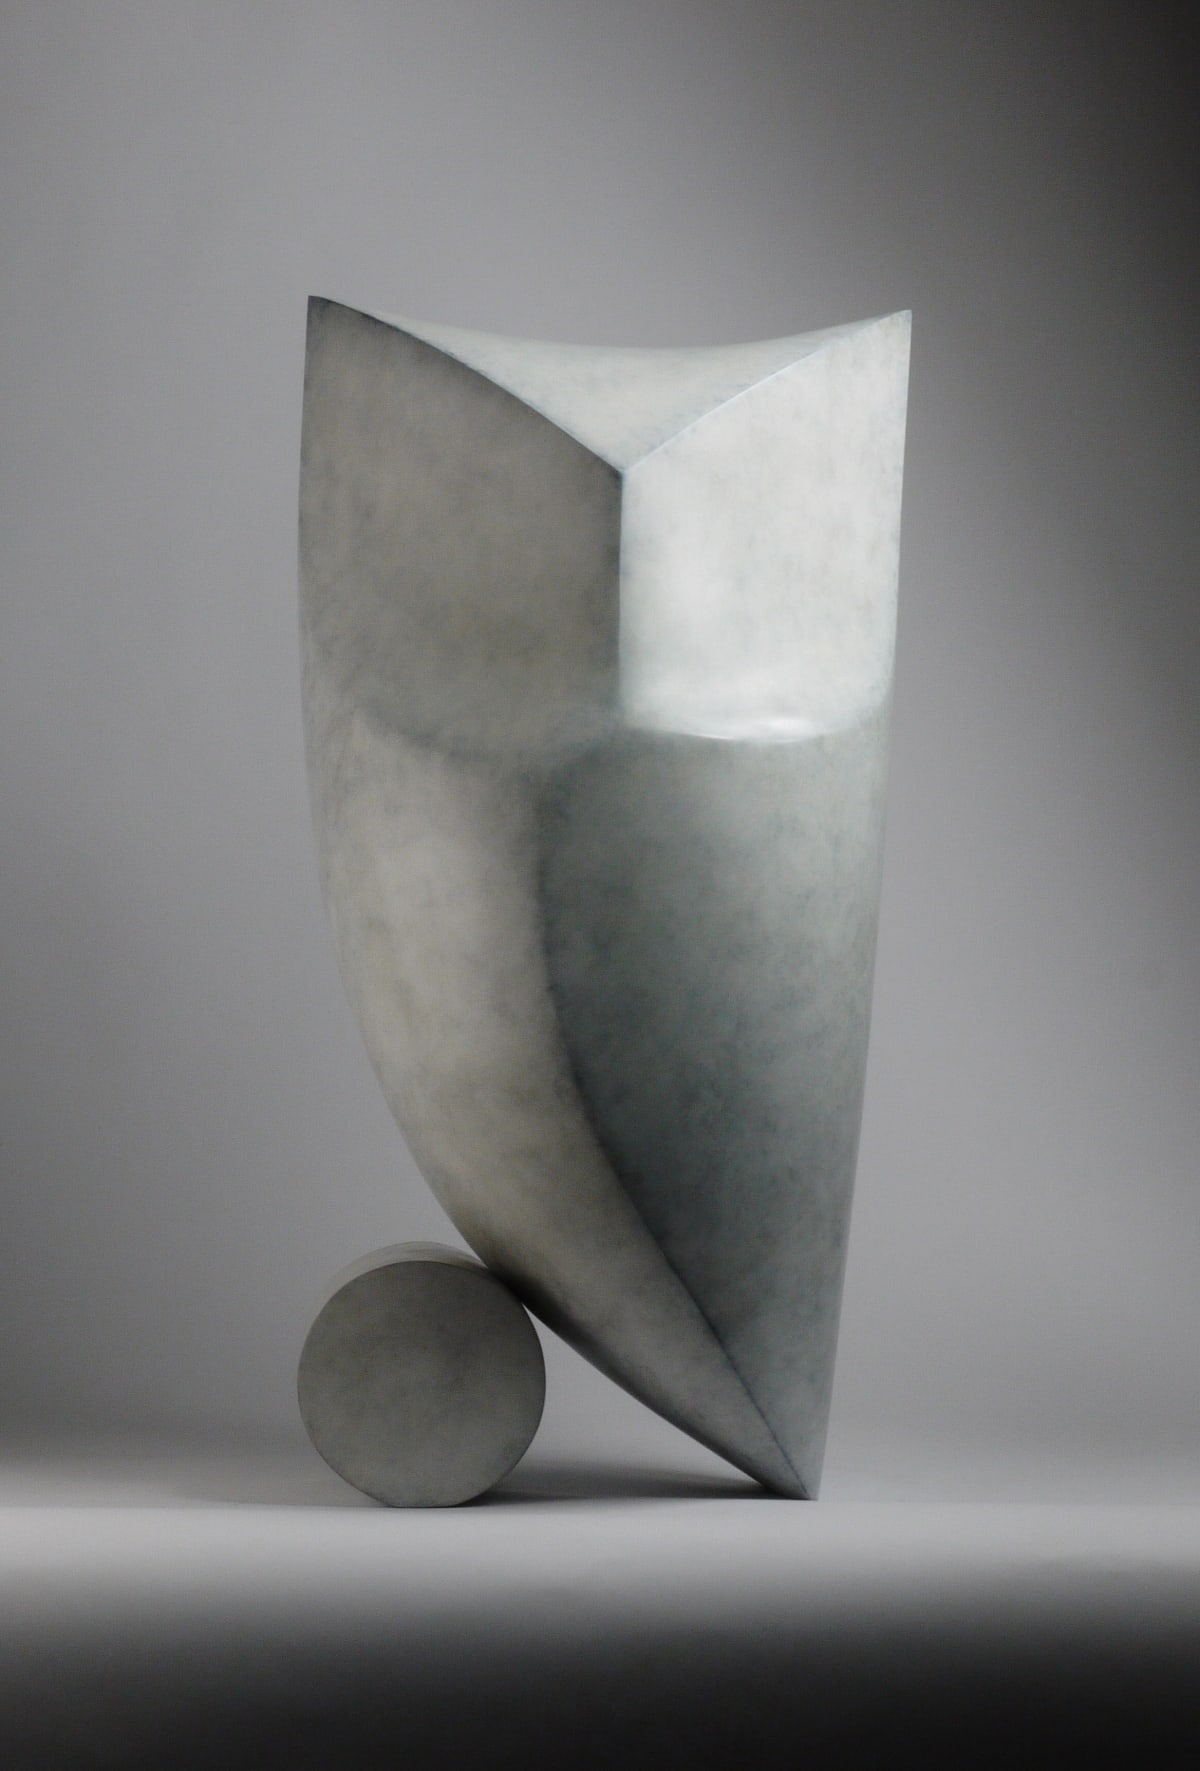 Stephen Page Owl II, 2018 Bronze Sculpture 57 x 29 x 26 cm 22 1/2 x 11 3/8 x 10 1/4 in Edition 3 of 12